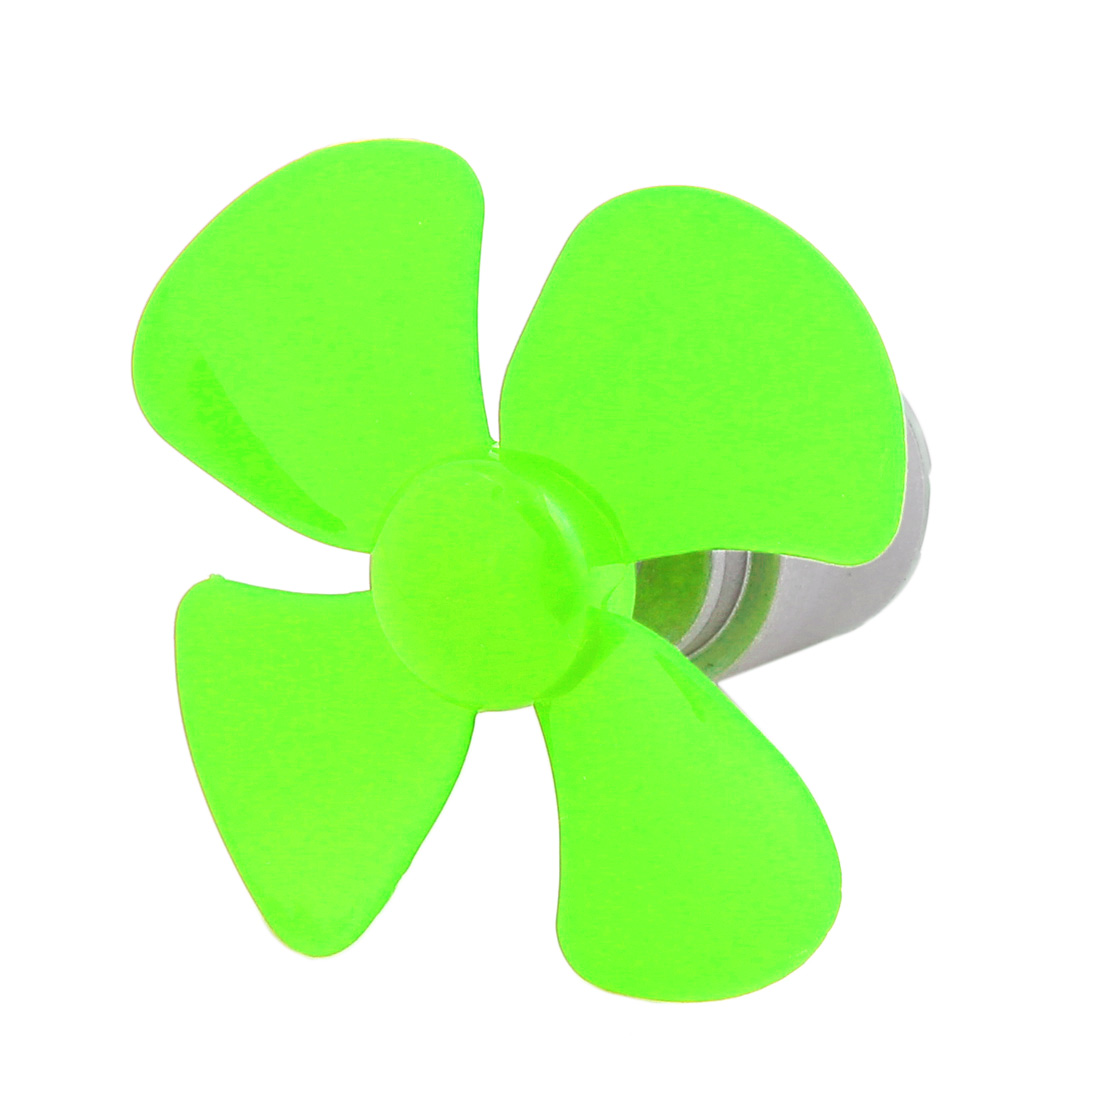 DC 3V 0.13A 6600RPM Green Strong Force Motor 4 Vanes 56mm Dia Propeller for RC Aircraft